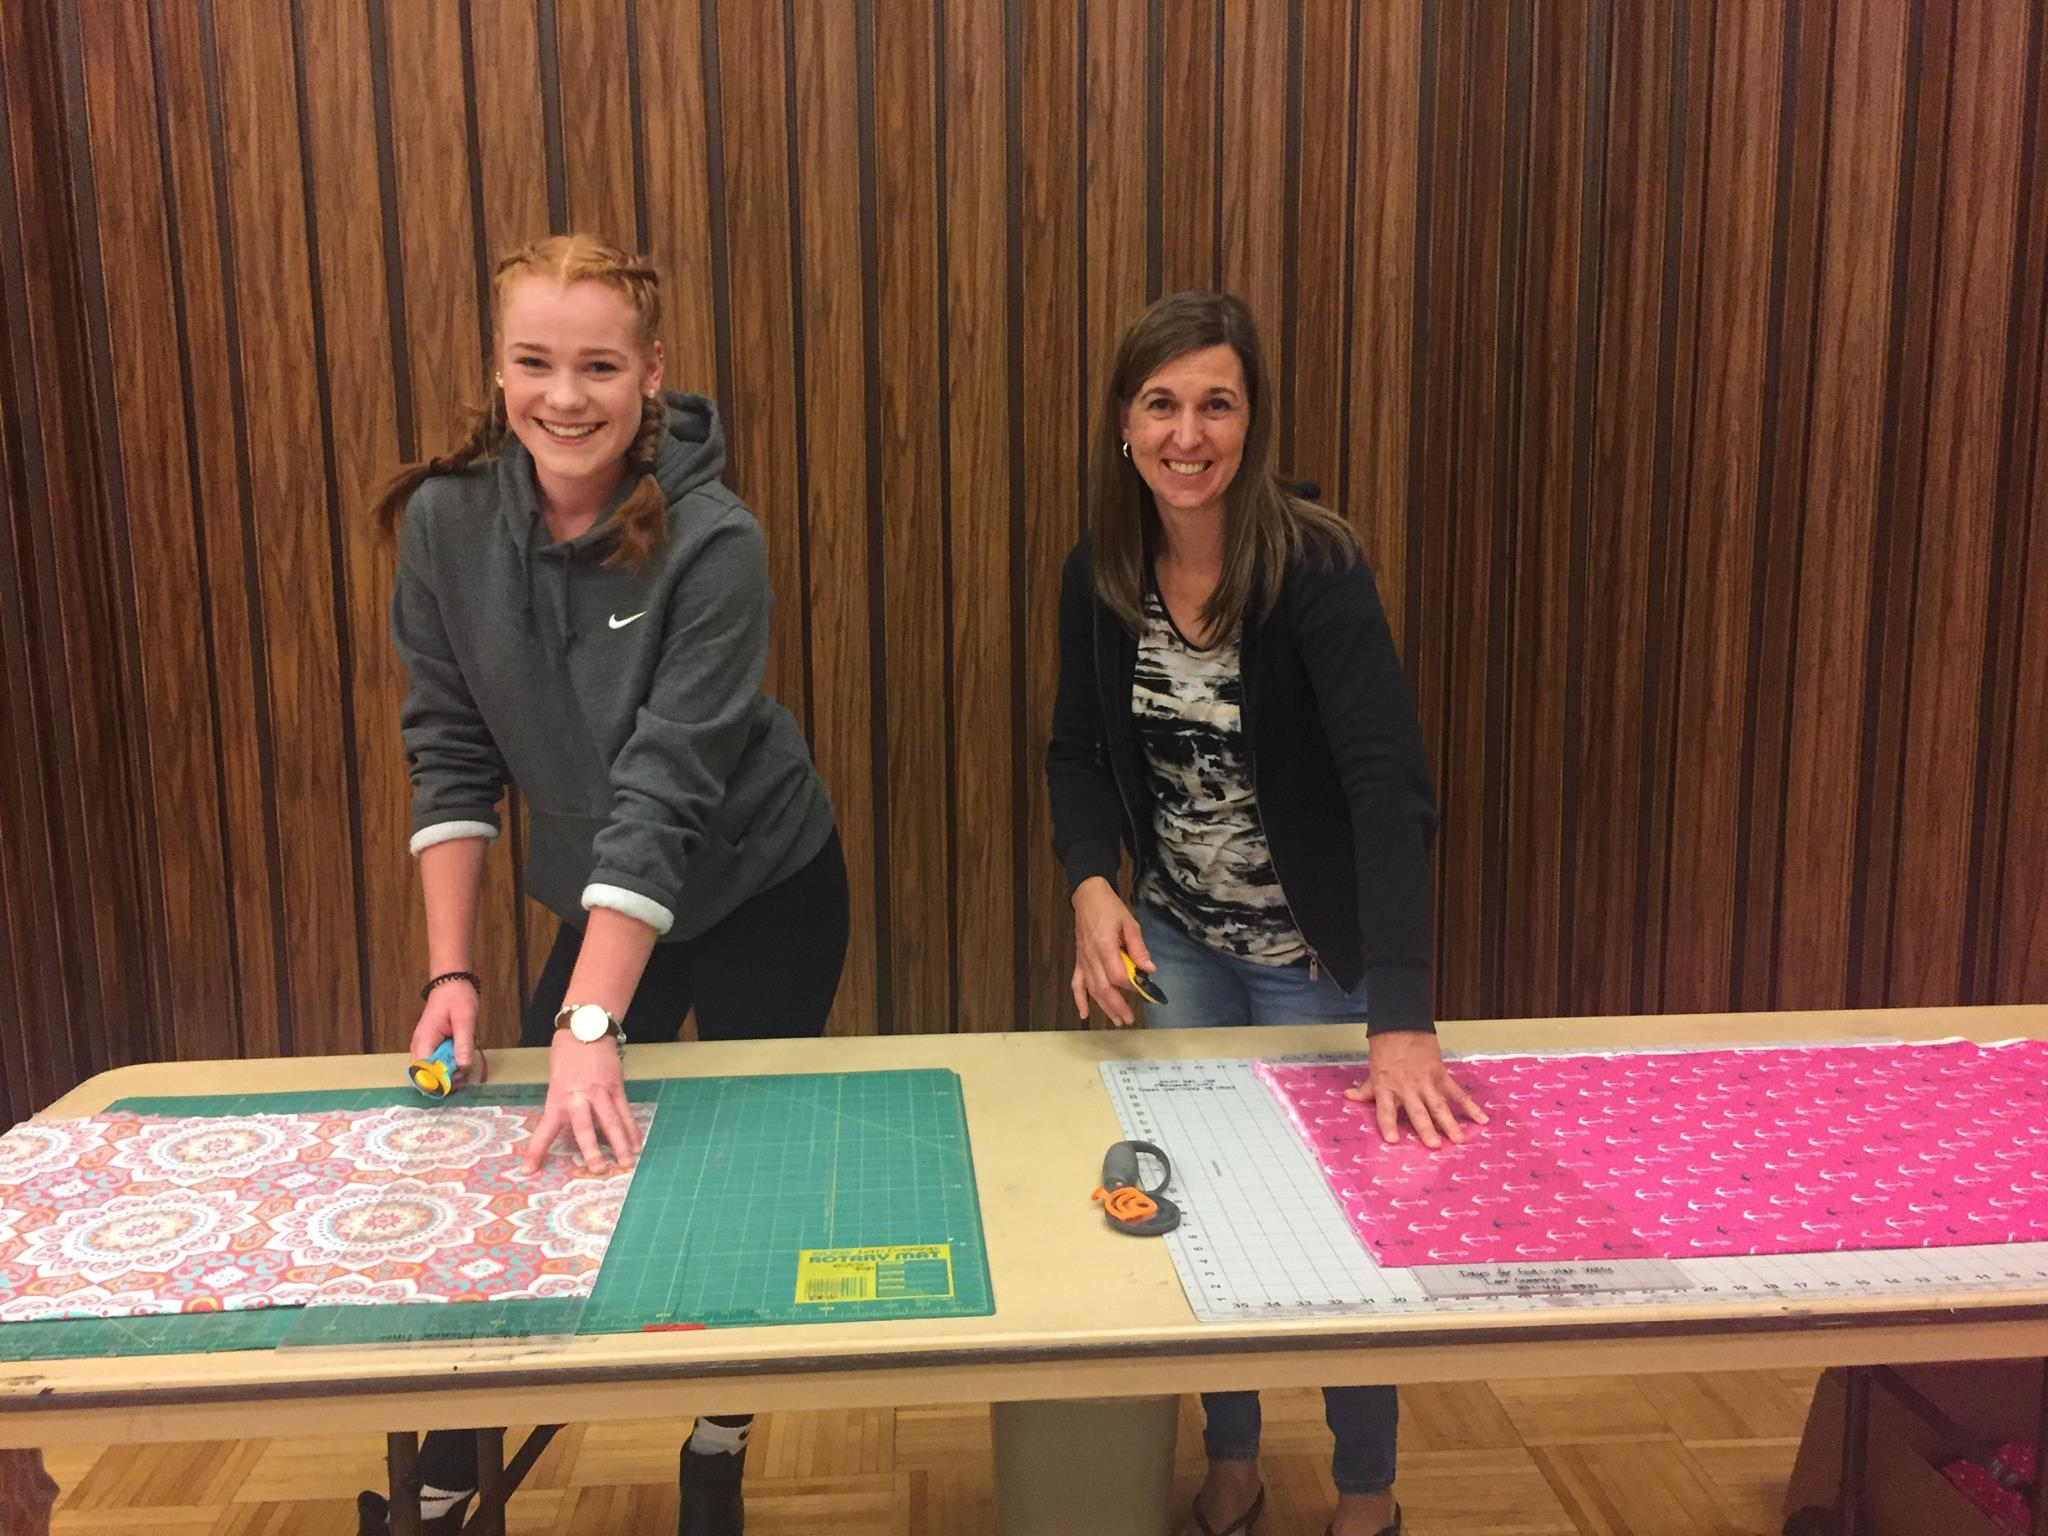 Emily from Germany went to participate in a Days for Girls Workshop. They made washable kits for girls in third world countries. She cut out the material for pads and the host mother did the sewing.